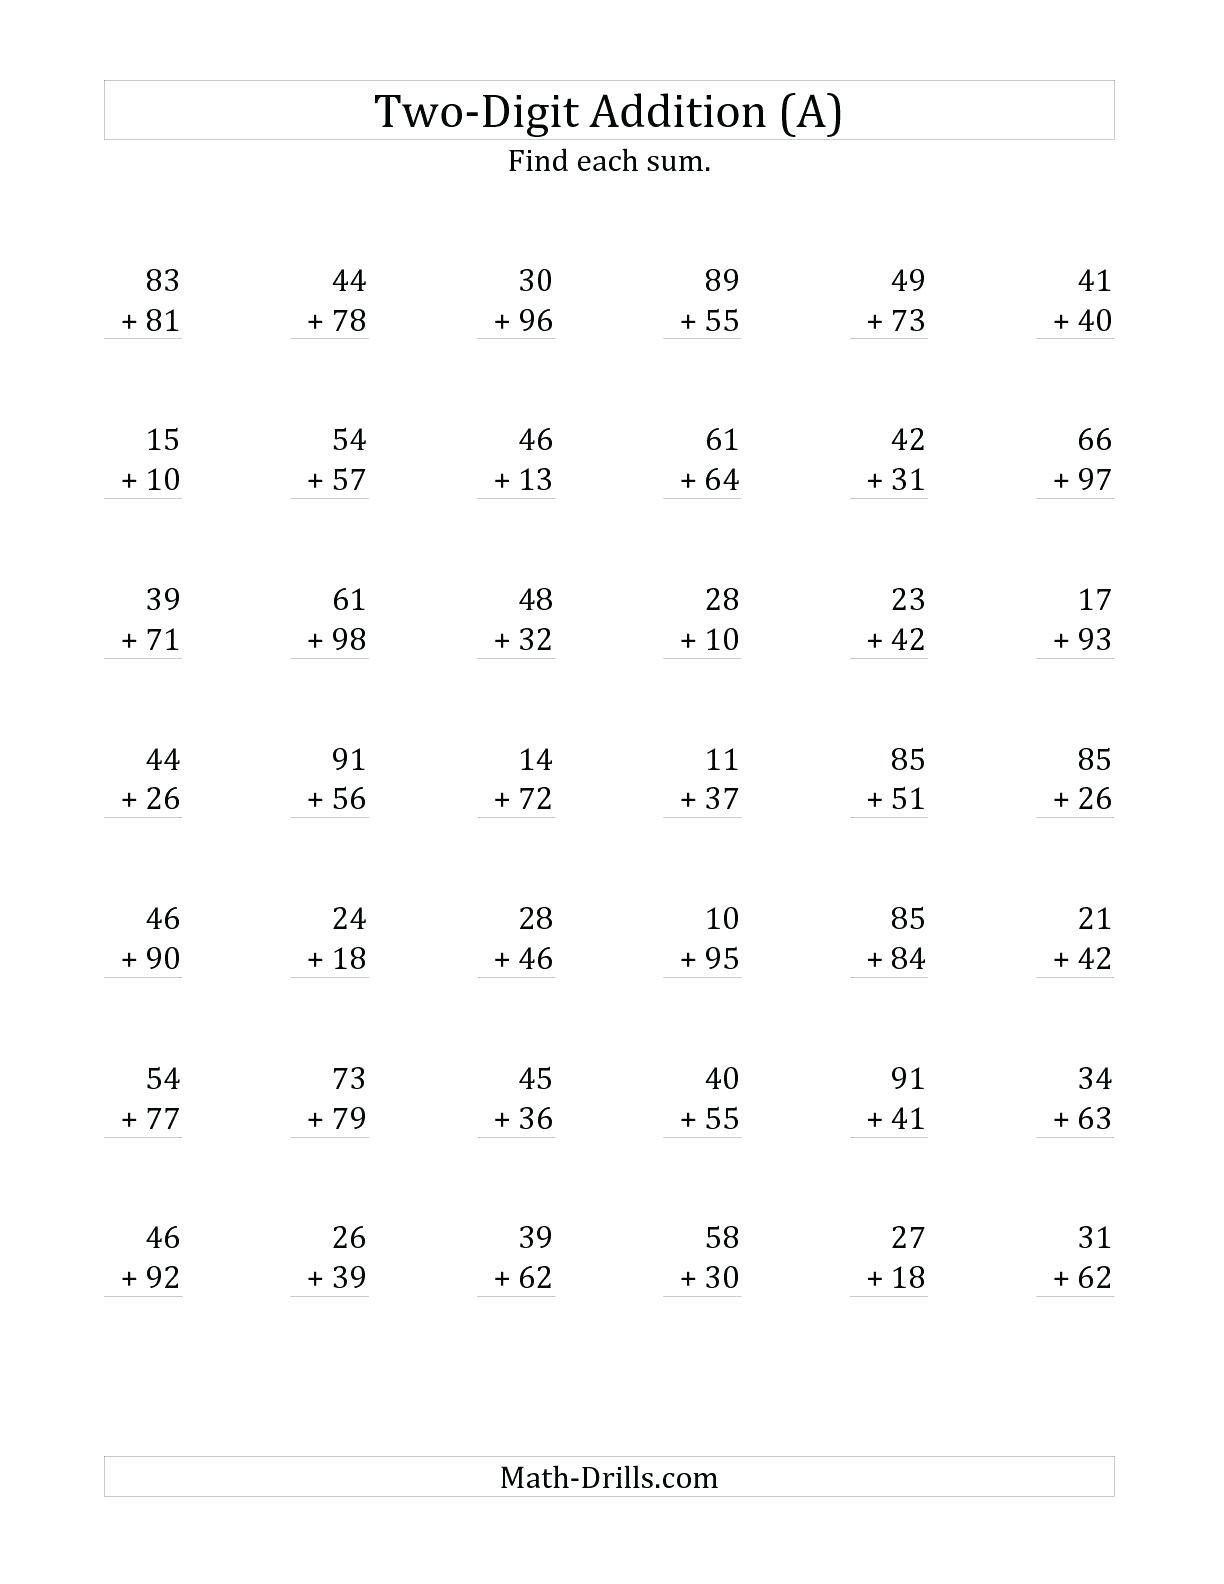 5 Free Math Worksheets First Grade 1 Addition Adding 2 Digit Plus 1 Digit No Regrouping Two D Addition Worksheets Math Fact Worksheets Free Math Worksheets [ 1584 x 1224 Pixel ]